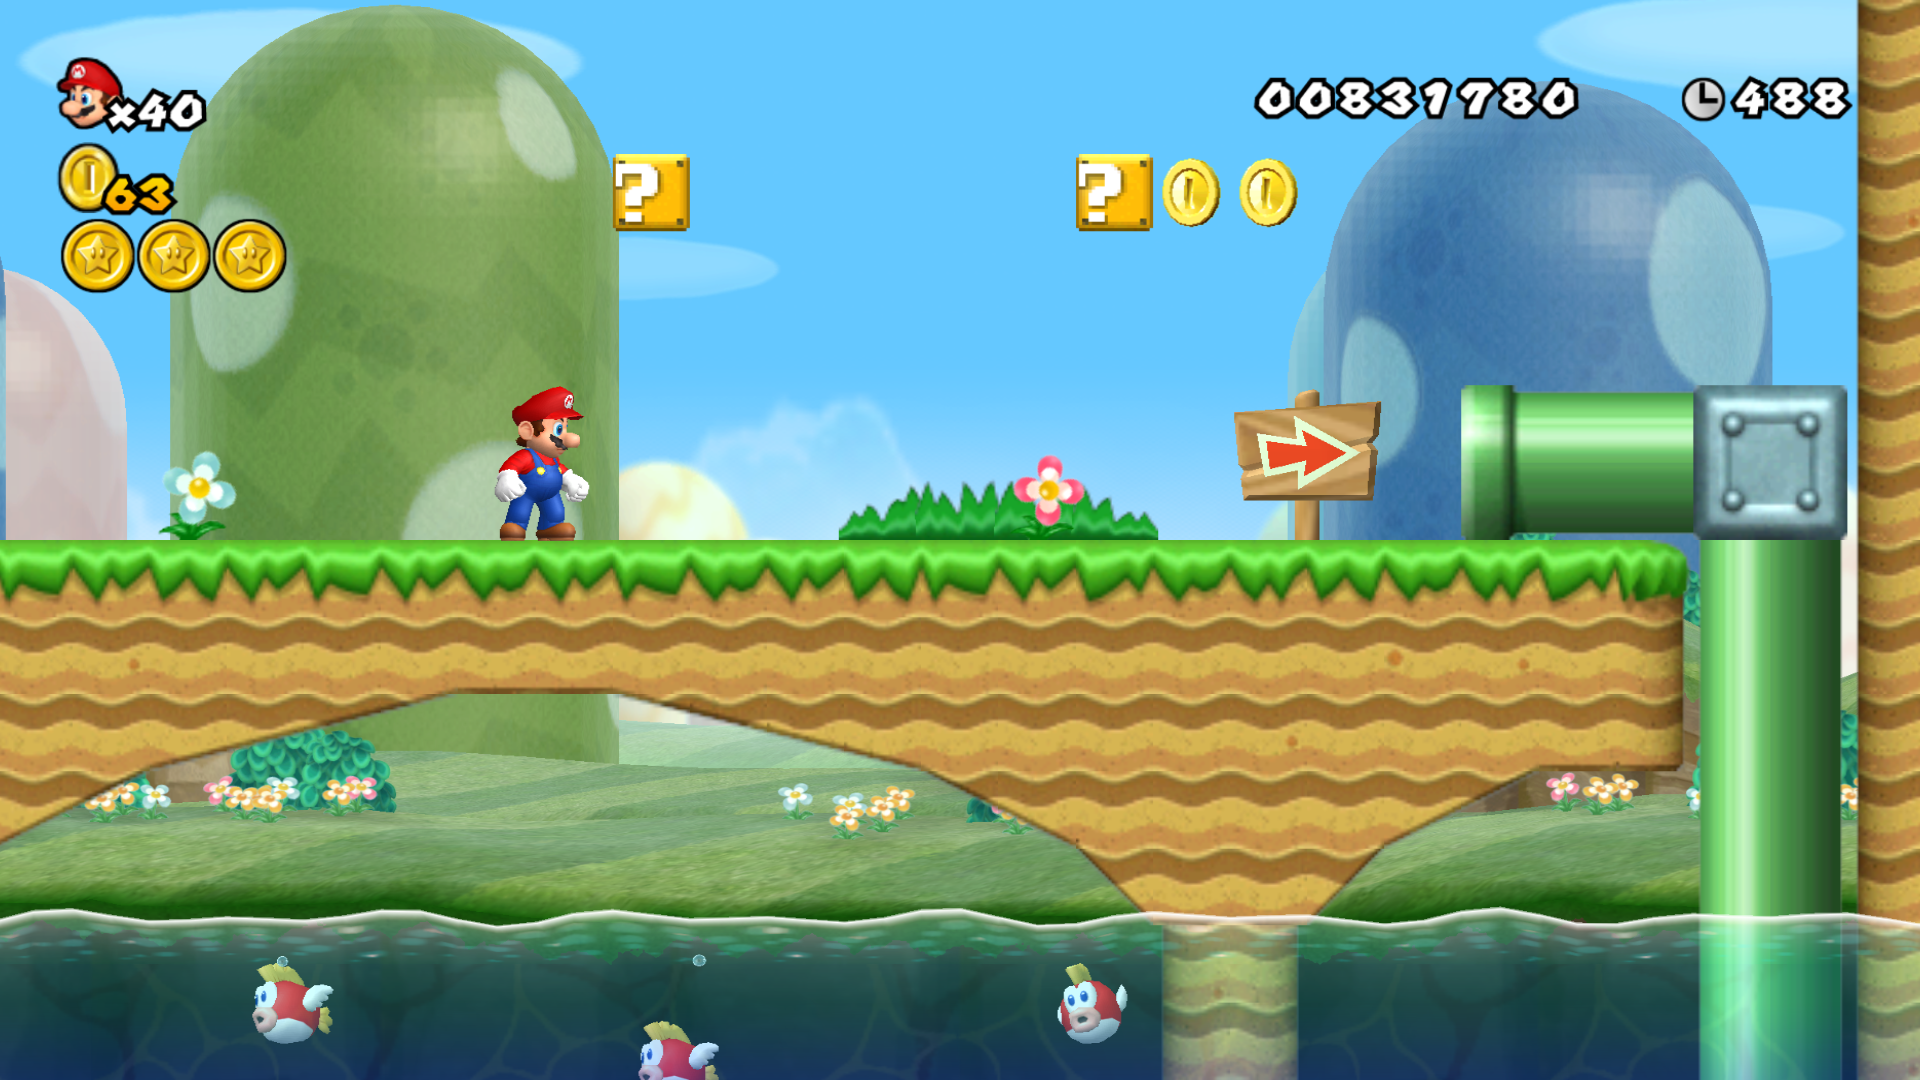 New Super Mario Bros Wii Rom Download For Dolphin